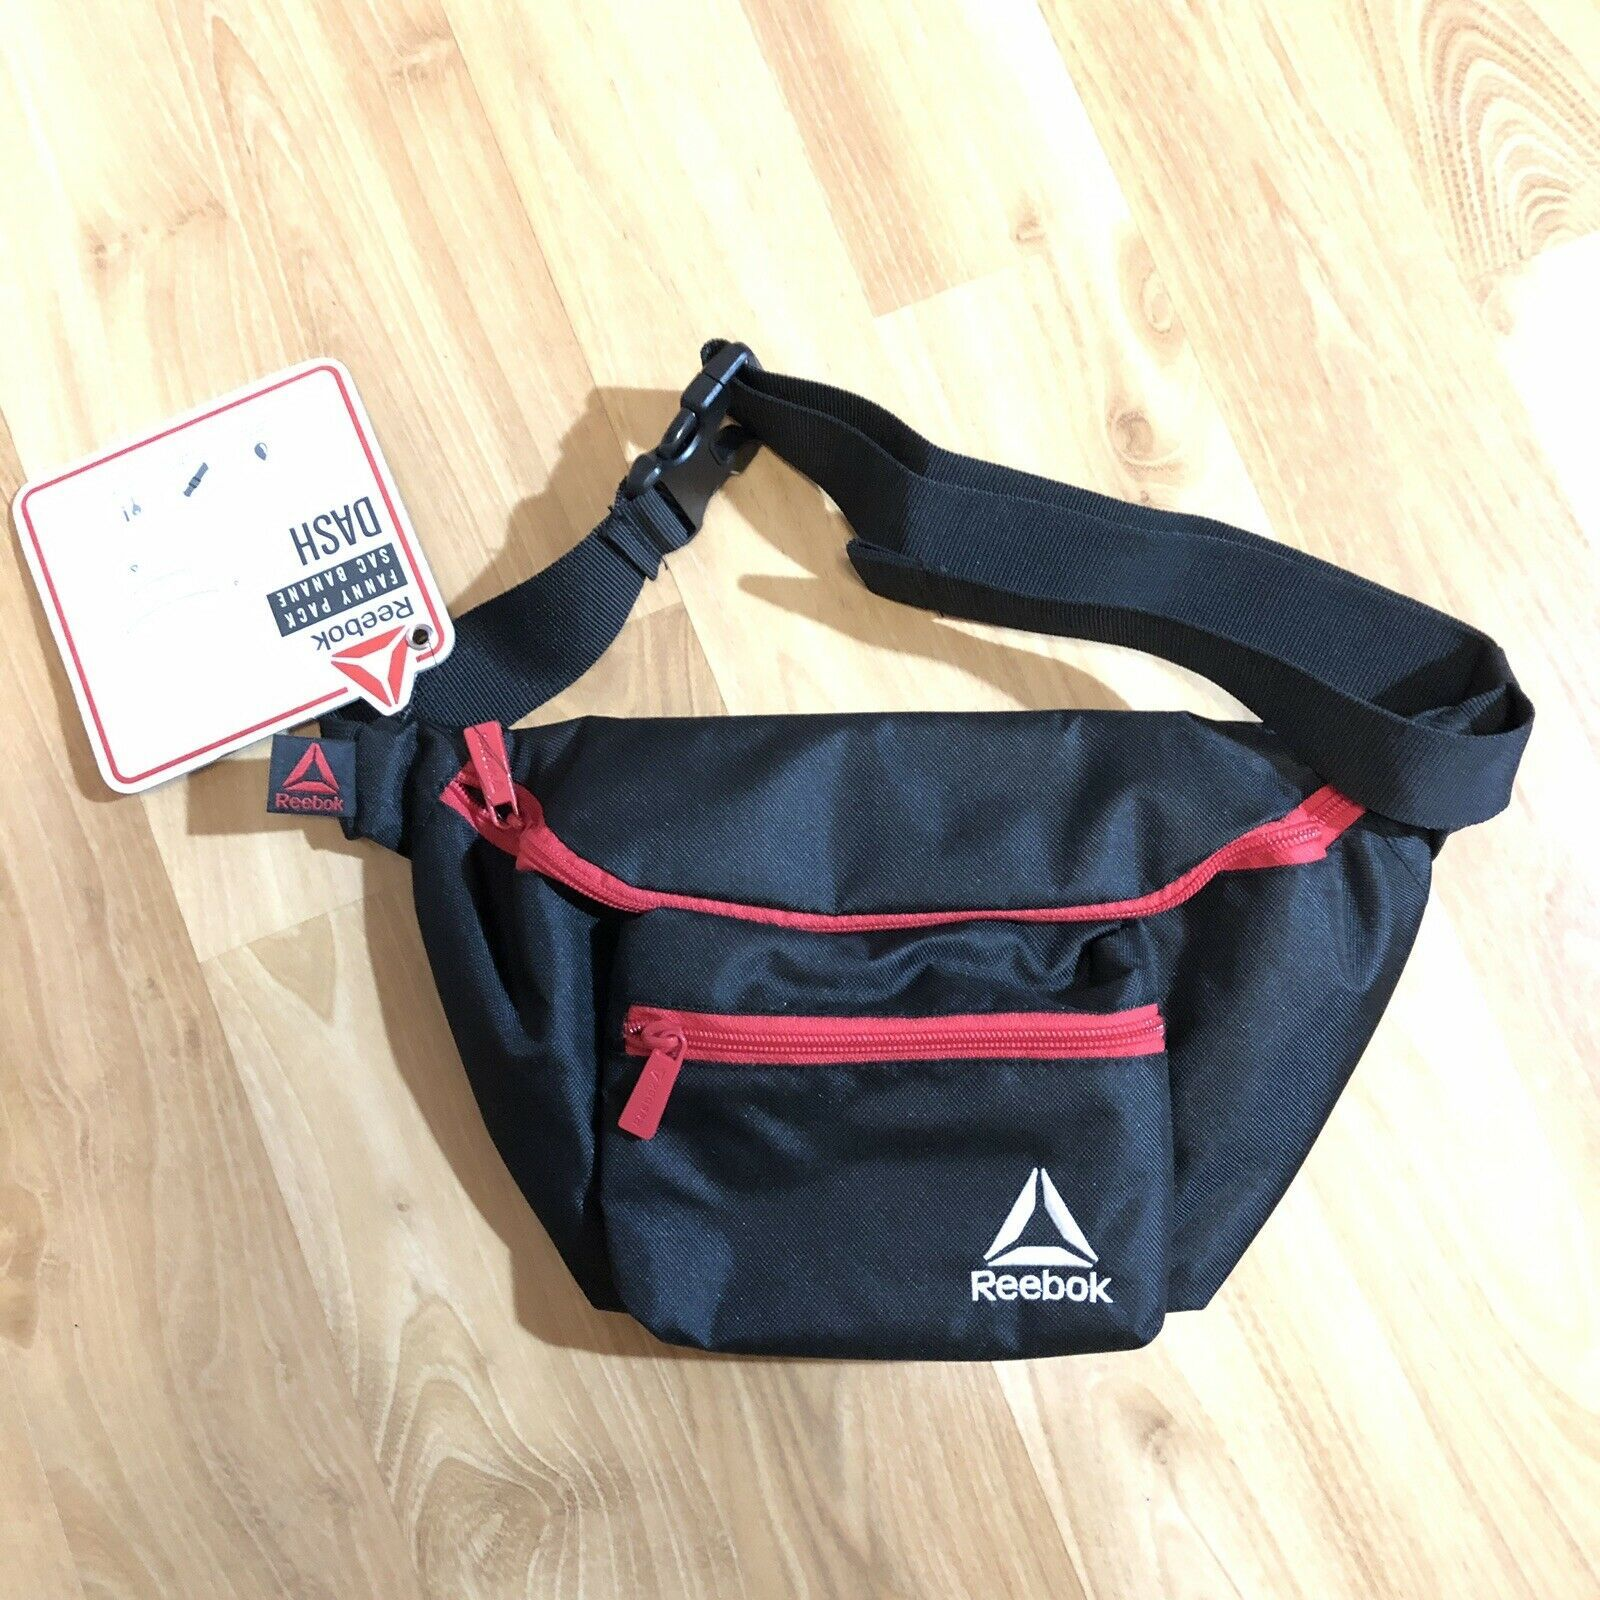 Bass Music Sport Waist Pack Fanny Pack Adjustable For Hike